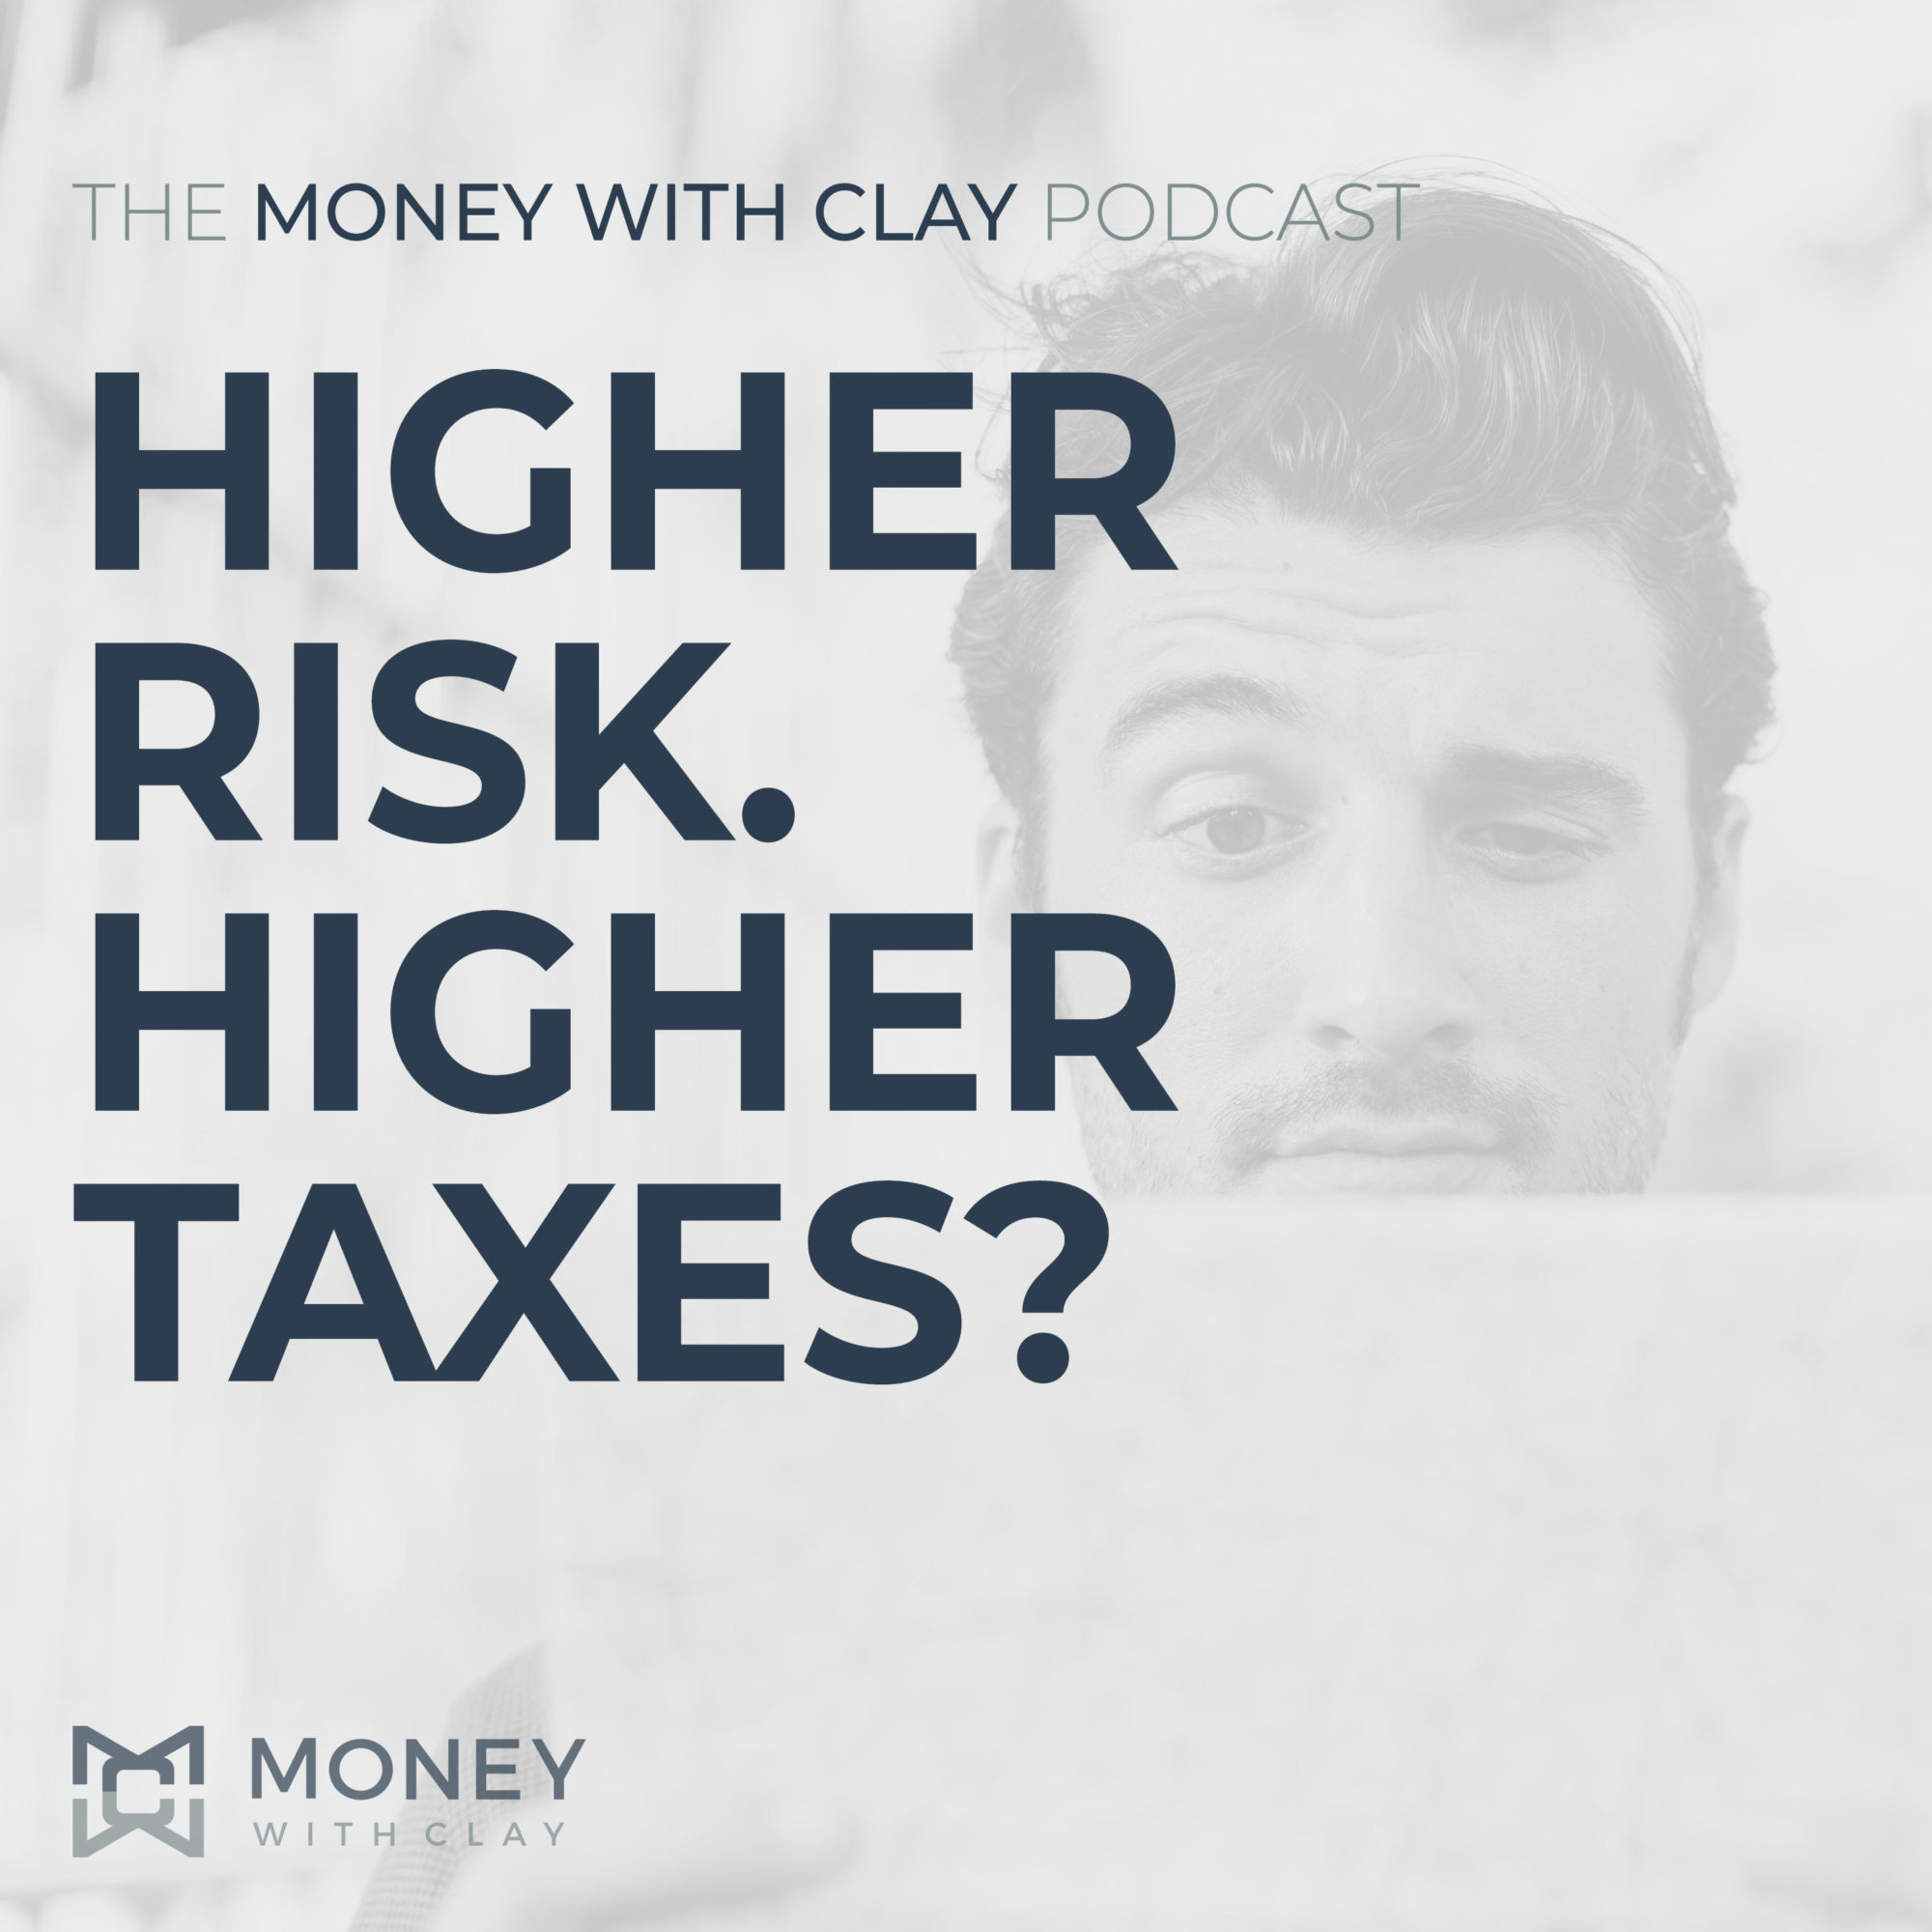 #070 - Higher Risk. Higher Taxes?